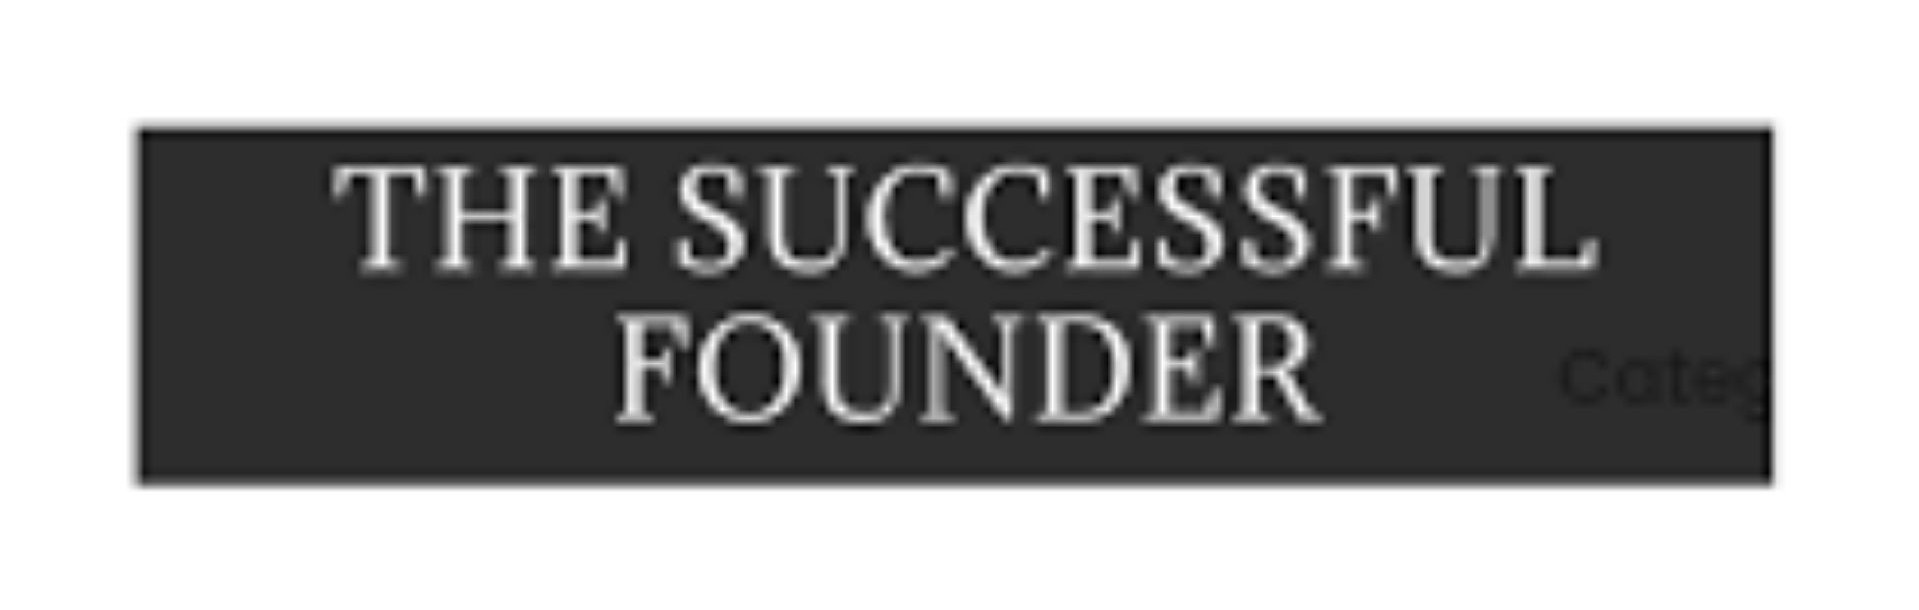 The successful founder logo